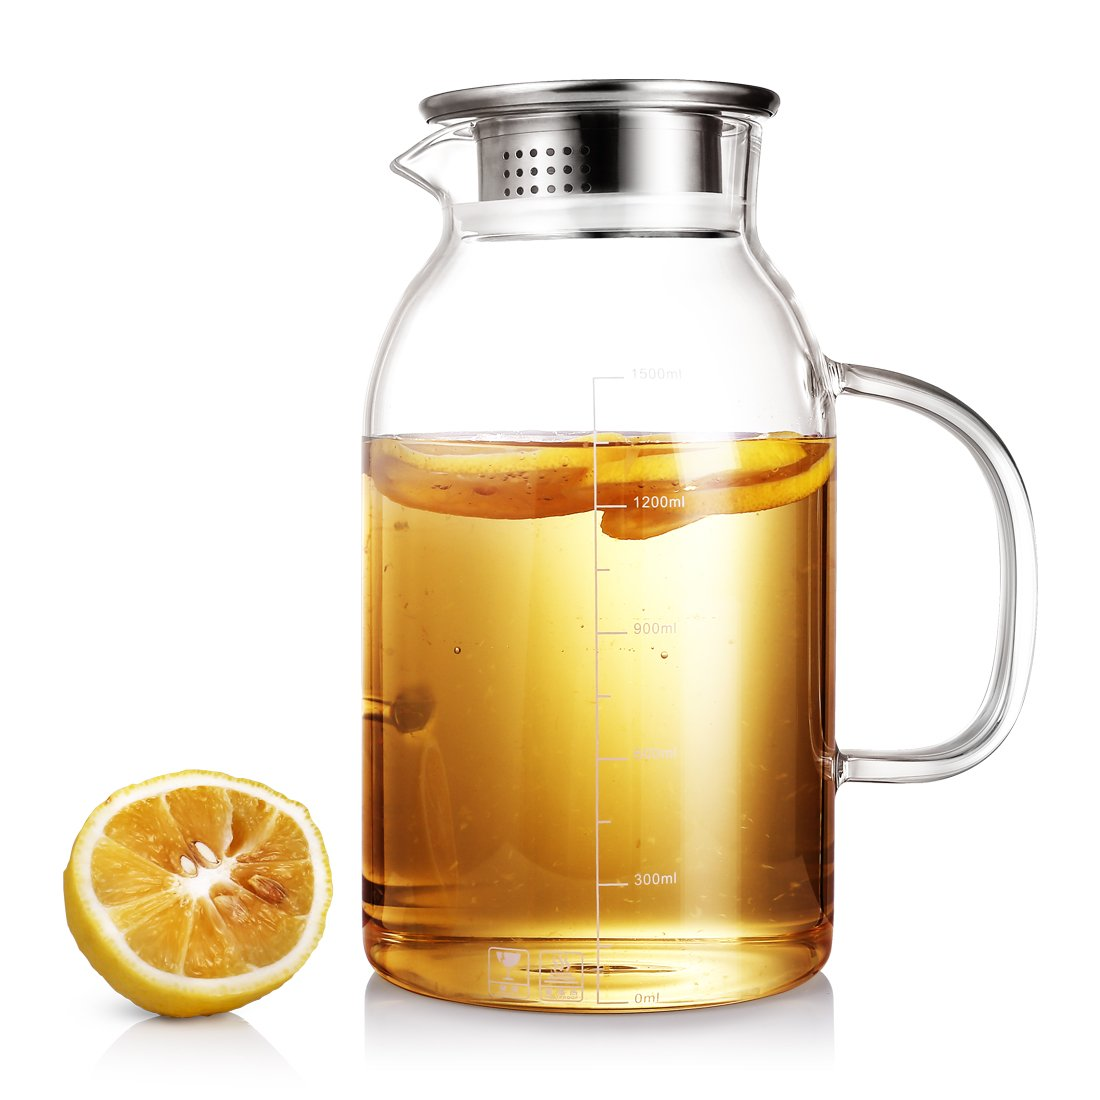 ONEISALL Heat Resistant Glass Beverage Pitcher with Stainless Steel Lid - Borosilicate Glass Water Carafe with Spout and Handle - Perfect for Homemade Juice & Iced Tea (1.8L)